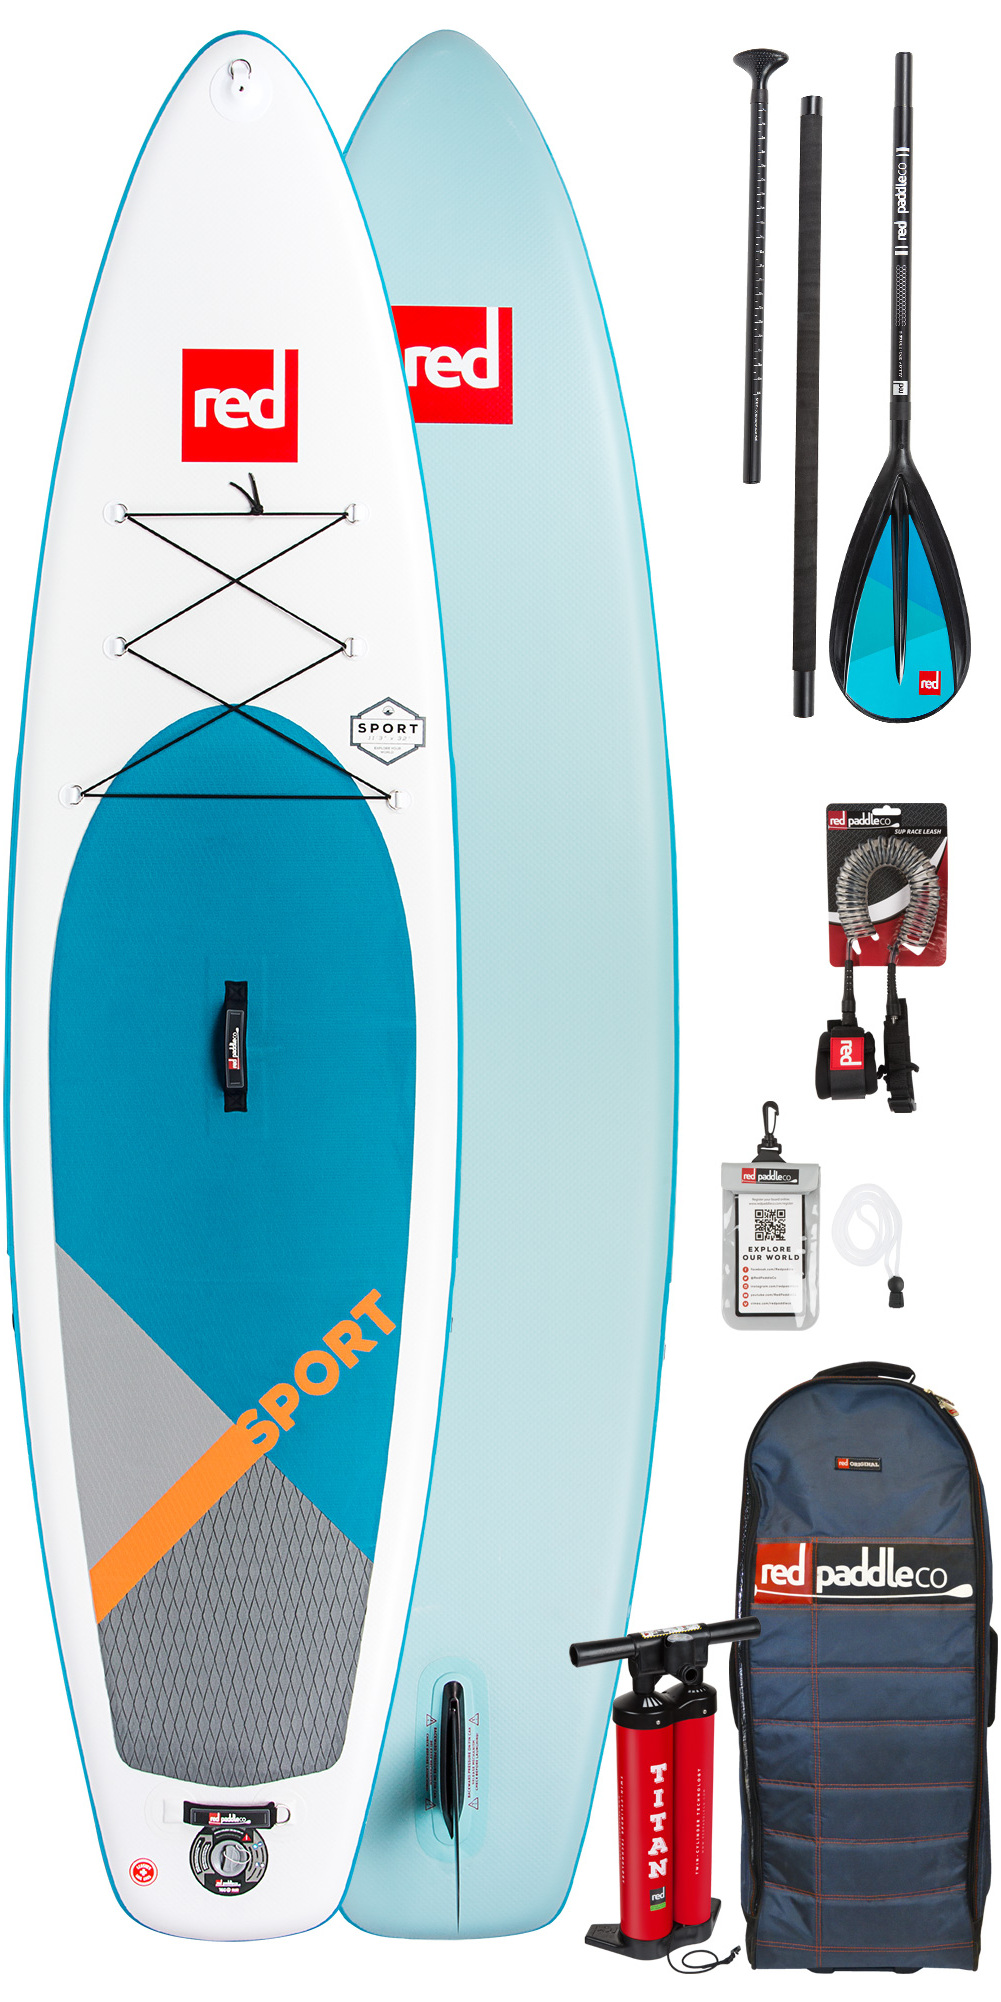 ab0fa8f1a26752 2019 Red Paddle Co Sport 126 Inflatable Stand Up Paddle Board Bag ...